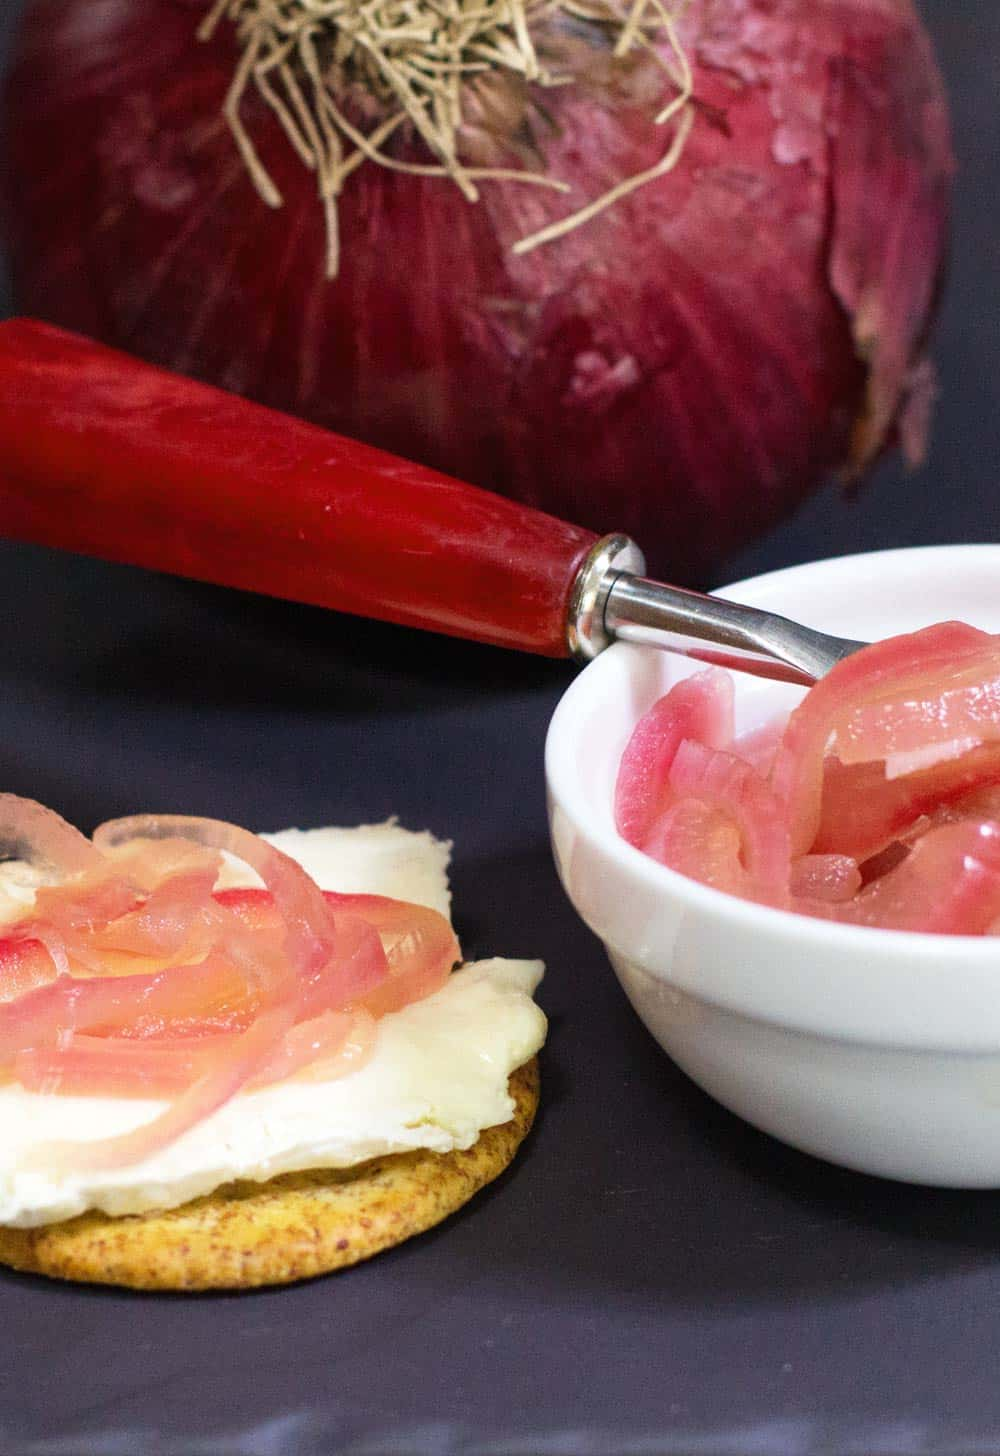 Pickled onions on brie with red onion in background